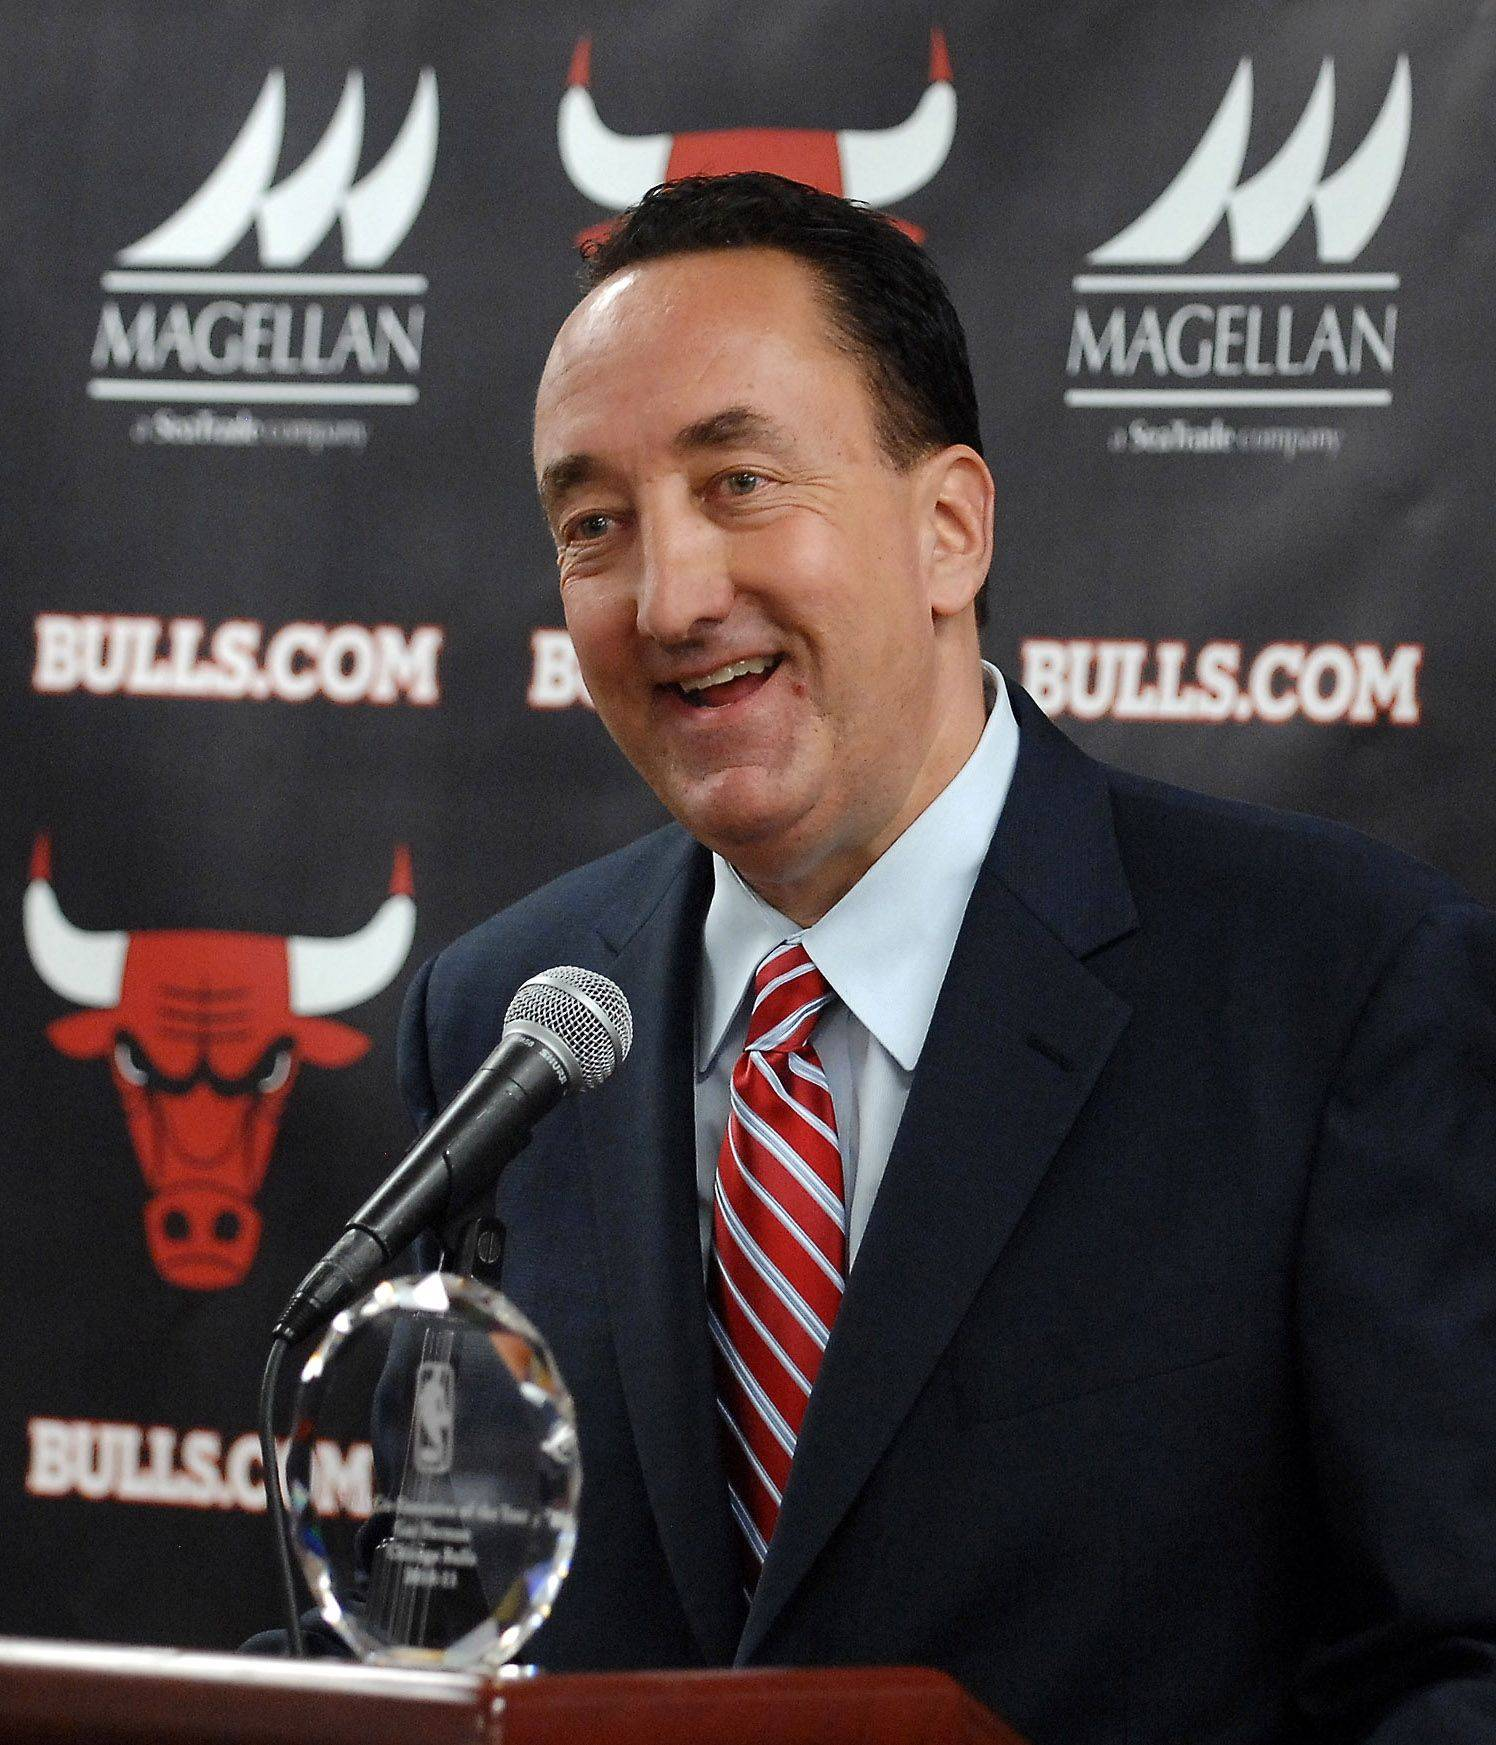 Bulls general manager Gar Forman holds a press conference to acknowledge his Co-Executive of the Year award before Tuesday night's game 5 of the NBA Eastern Conference semis. He shared the award with Pat Riley of the Miami Heat.